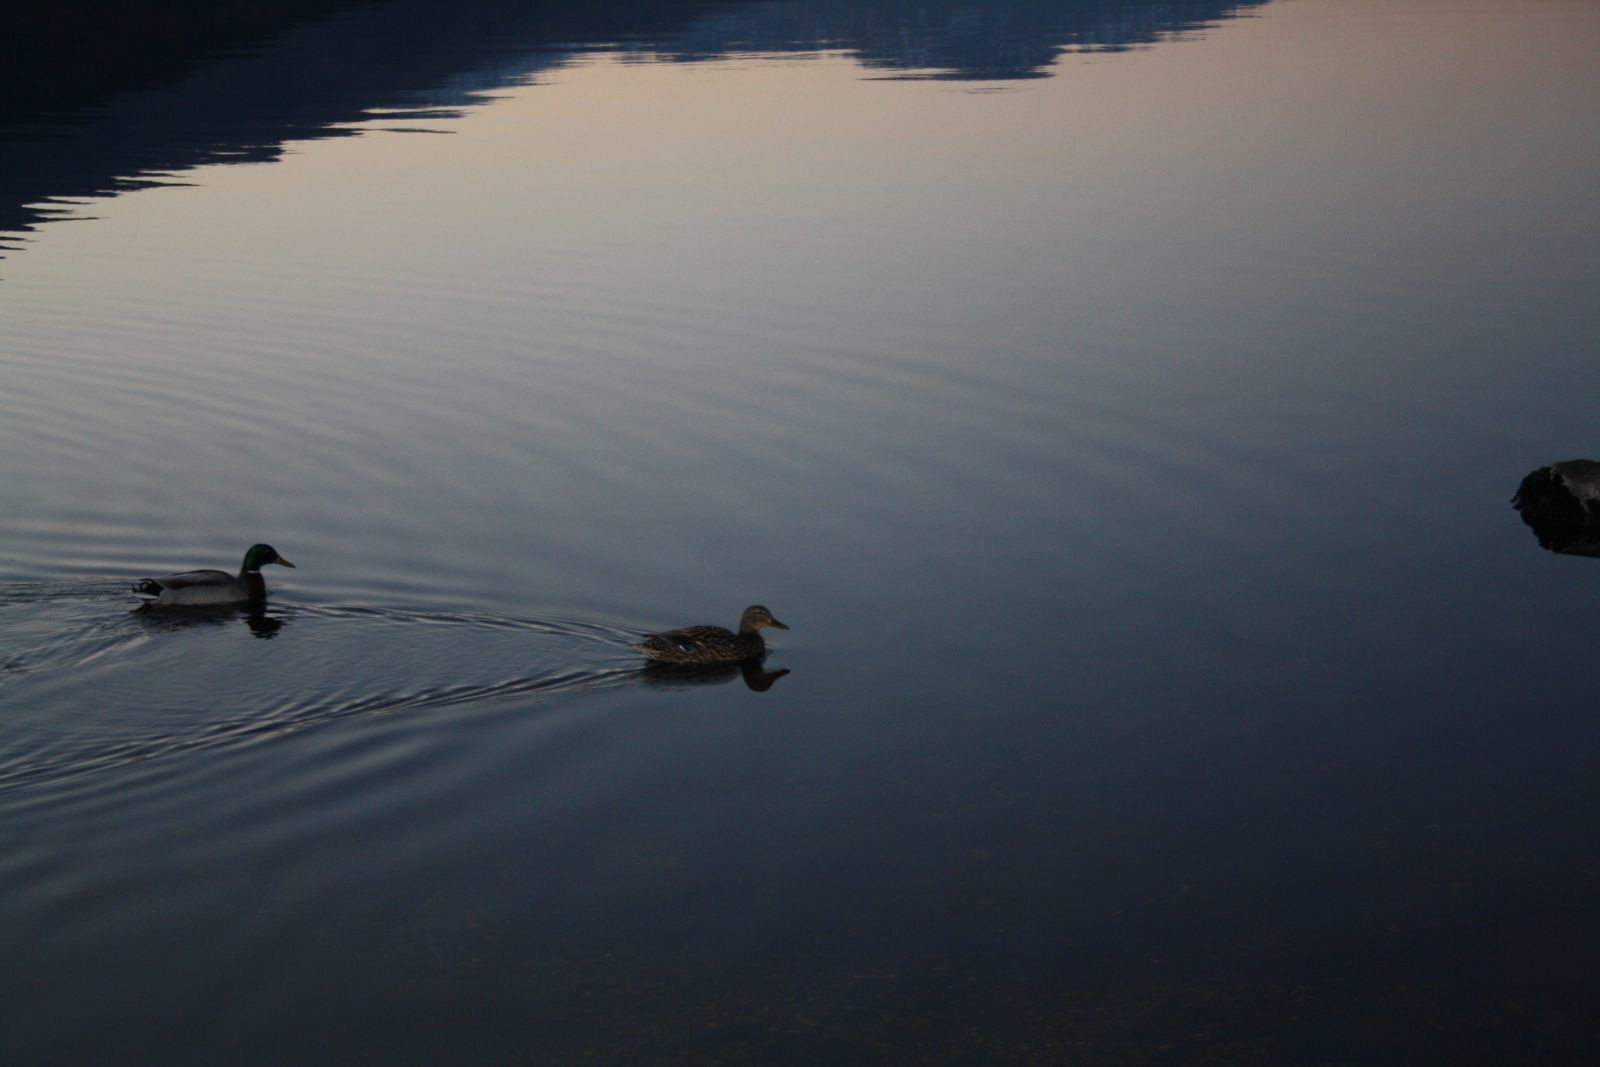 Ducks at Rowardennan